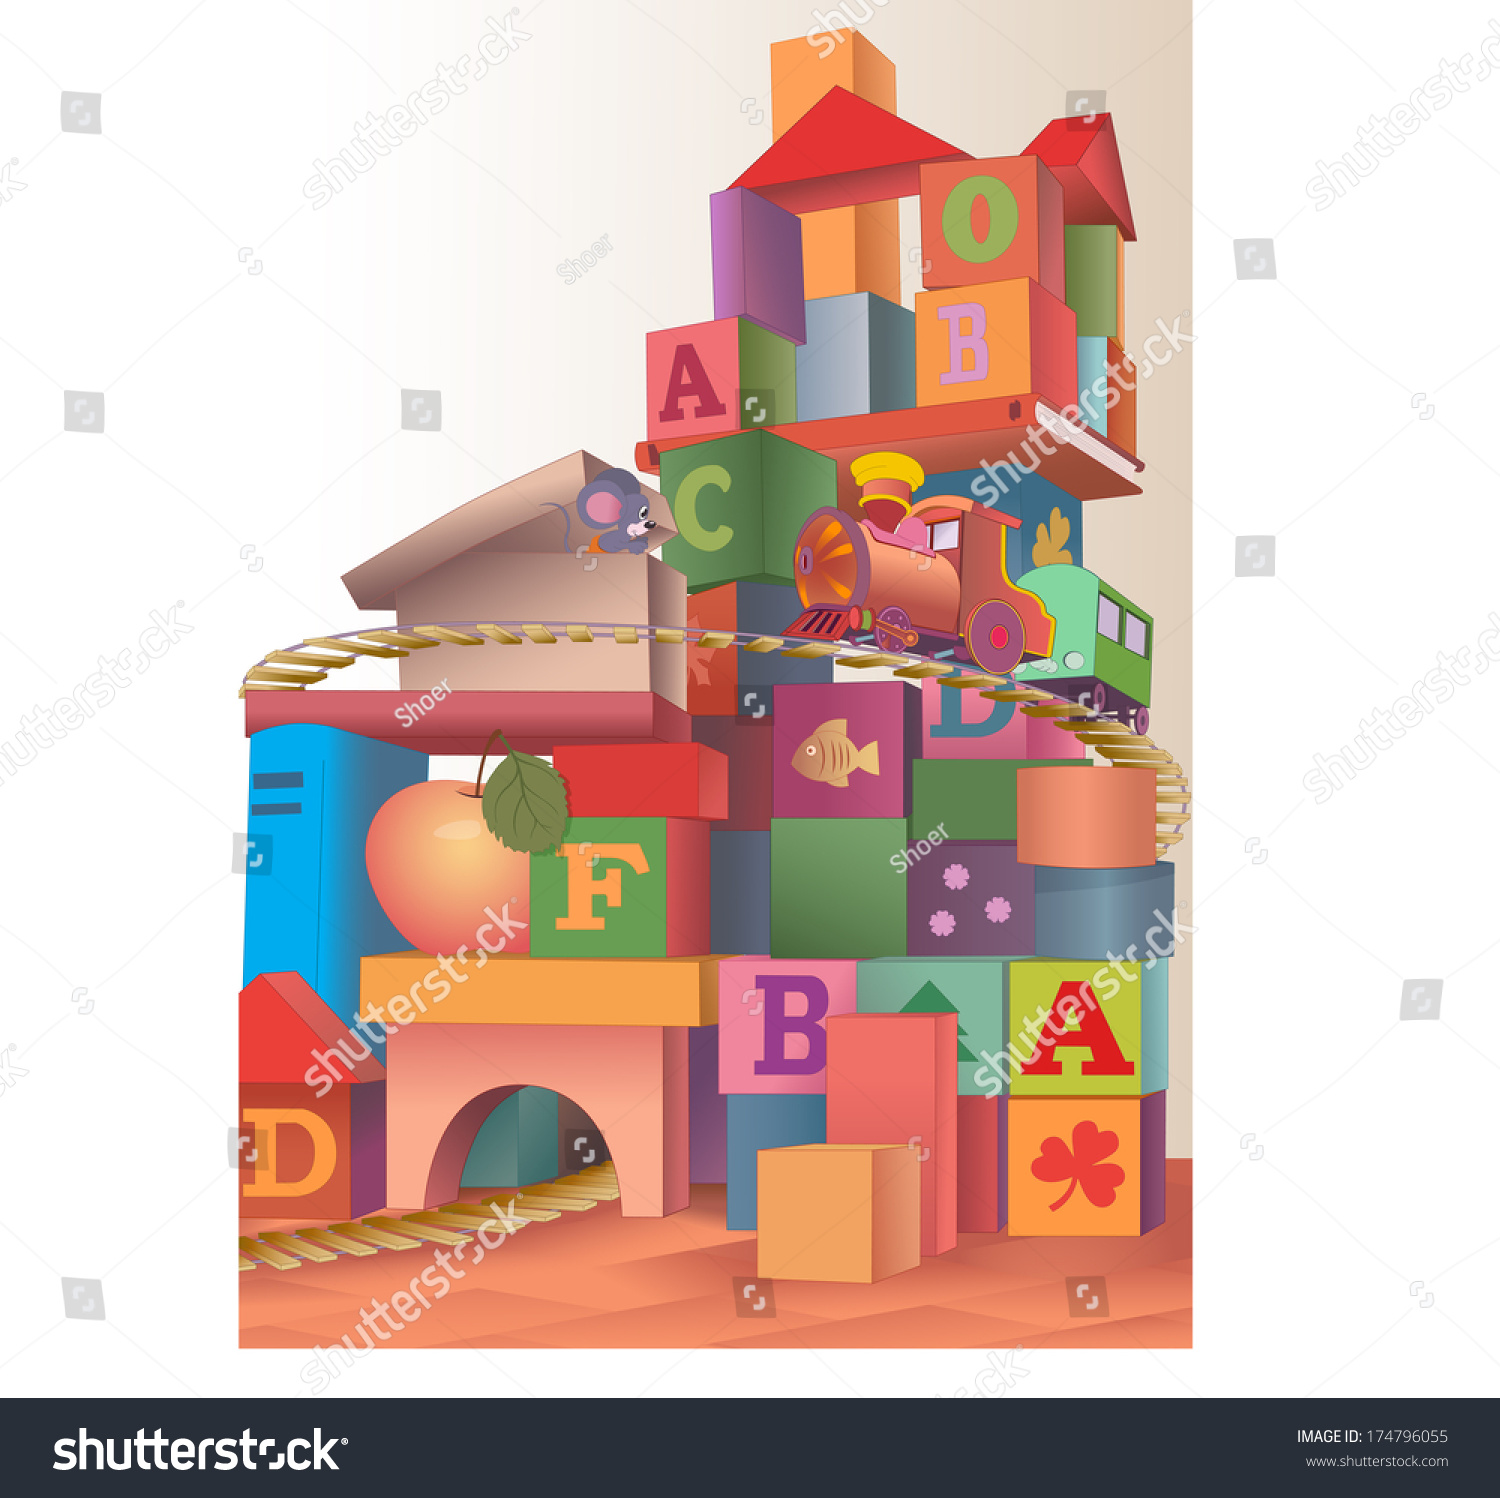 Construction Play Toys : Illustration large construction various items toys stock